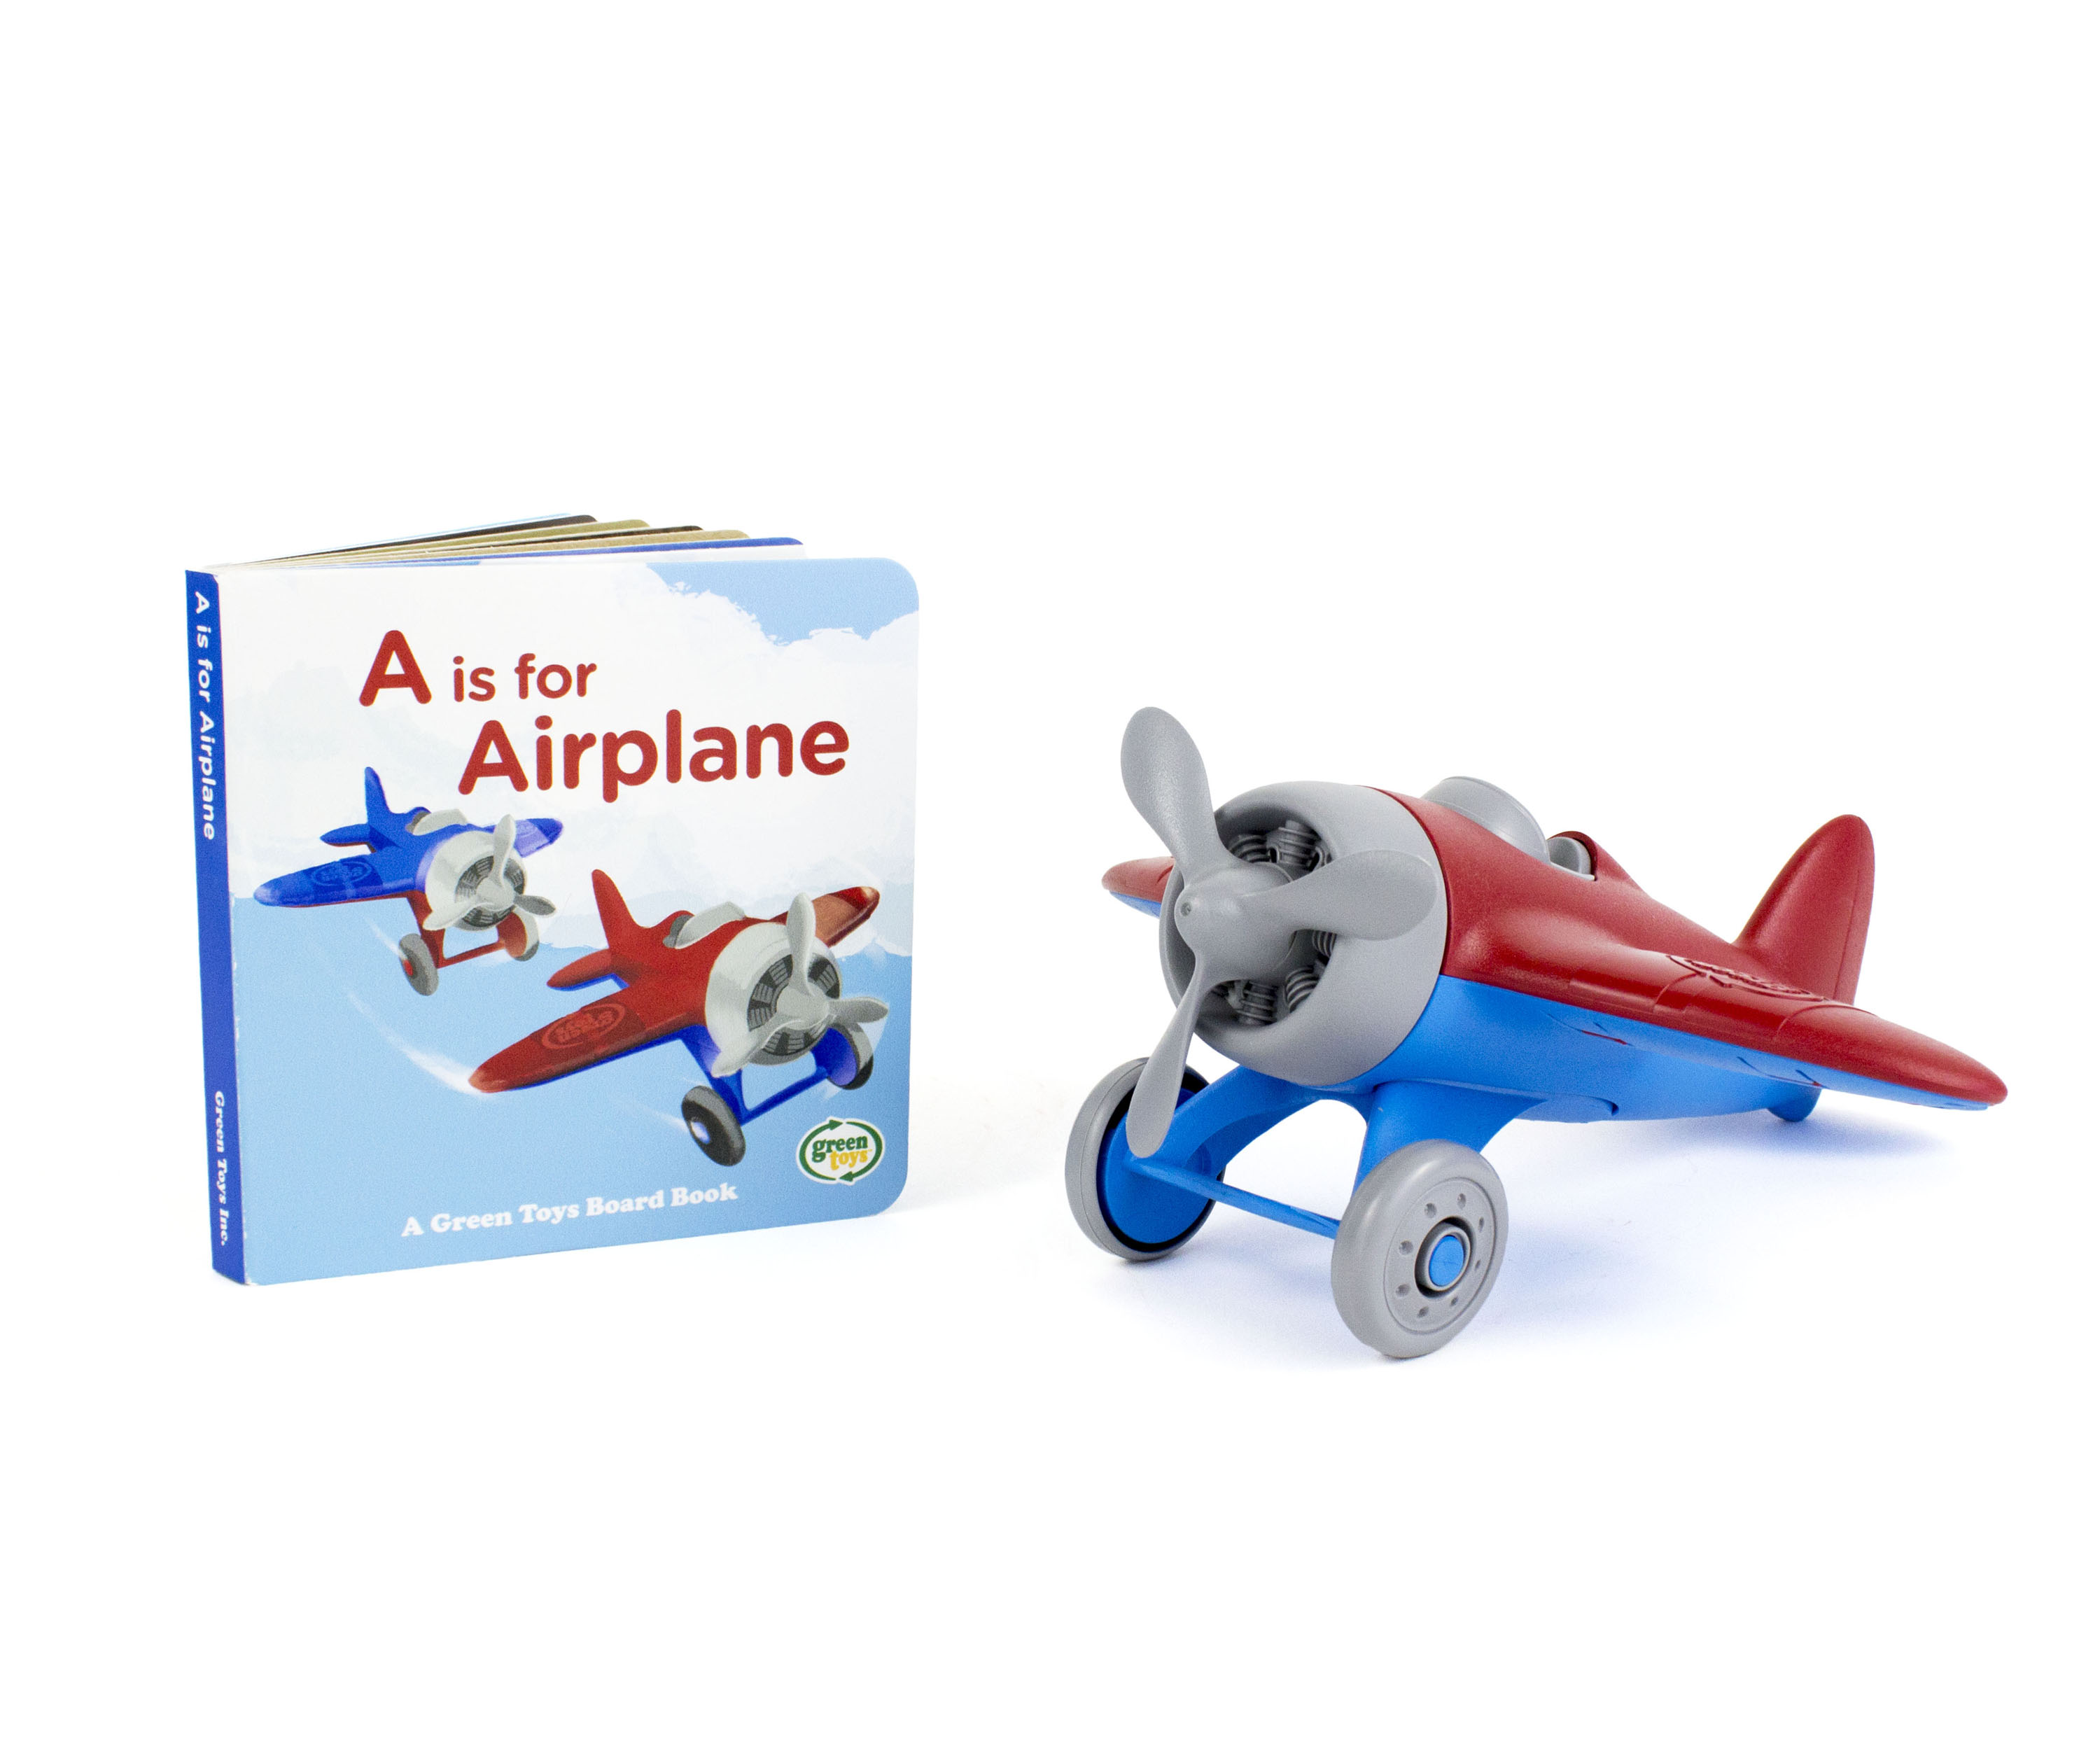 Green Toys Airplane & Board Book by Green Toys Inc